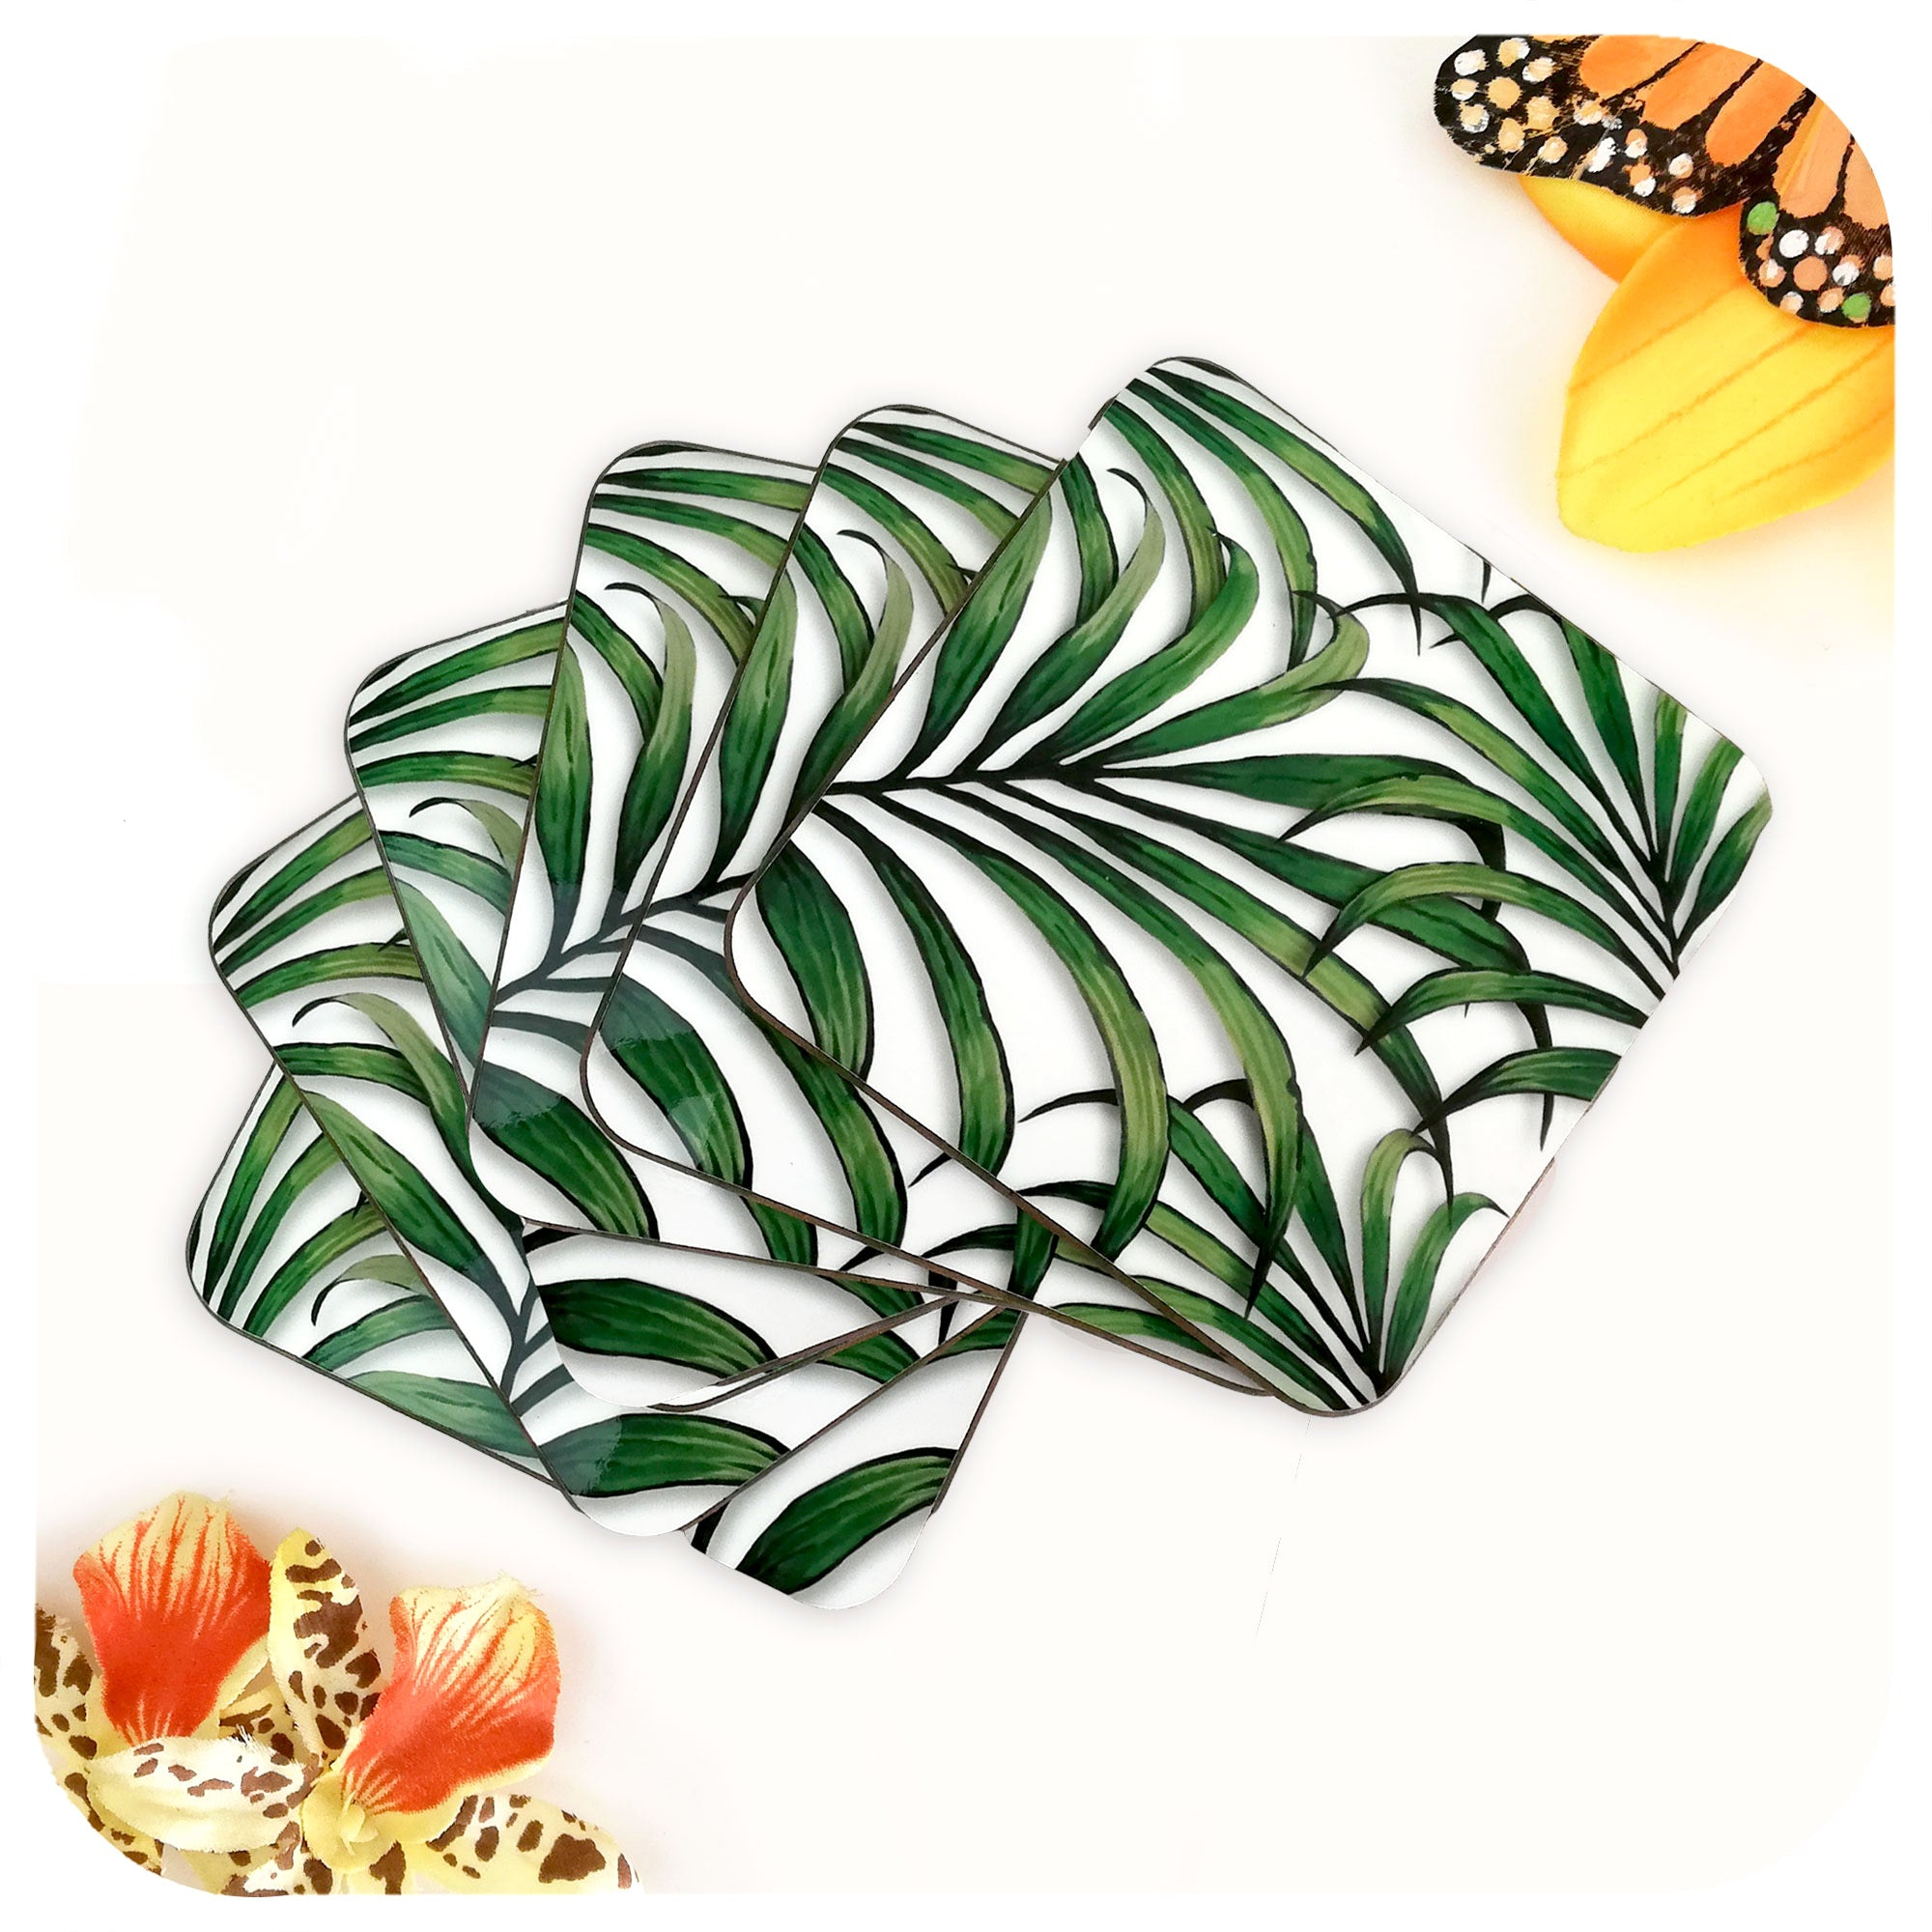 Palm Leaf Print Coasters, set of 6 in a fan | The Inkabilly Emporium